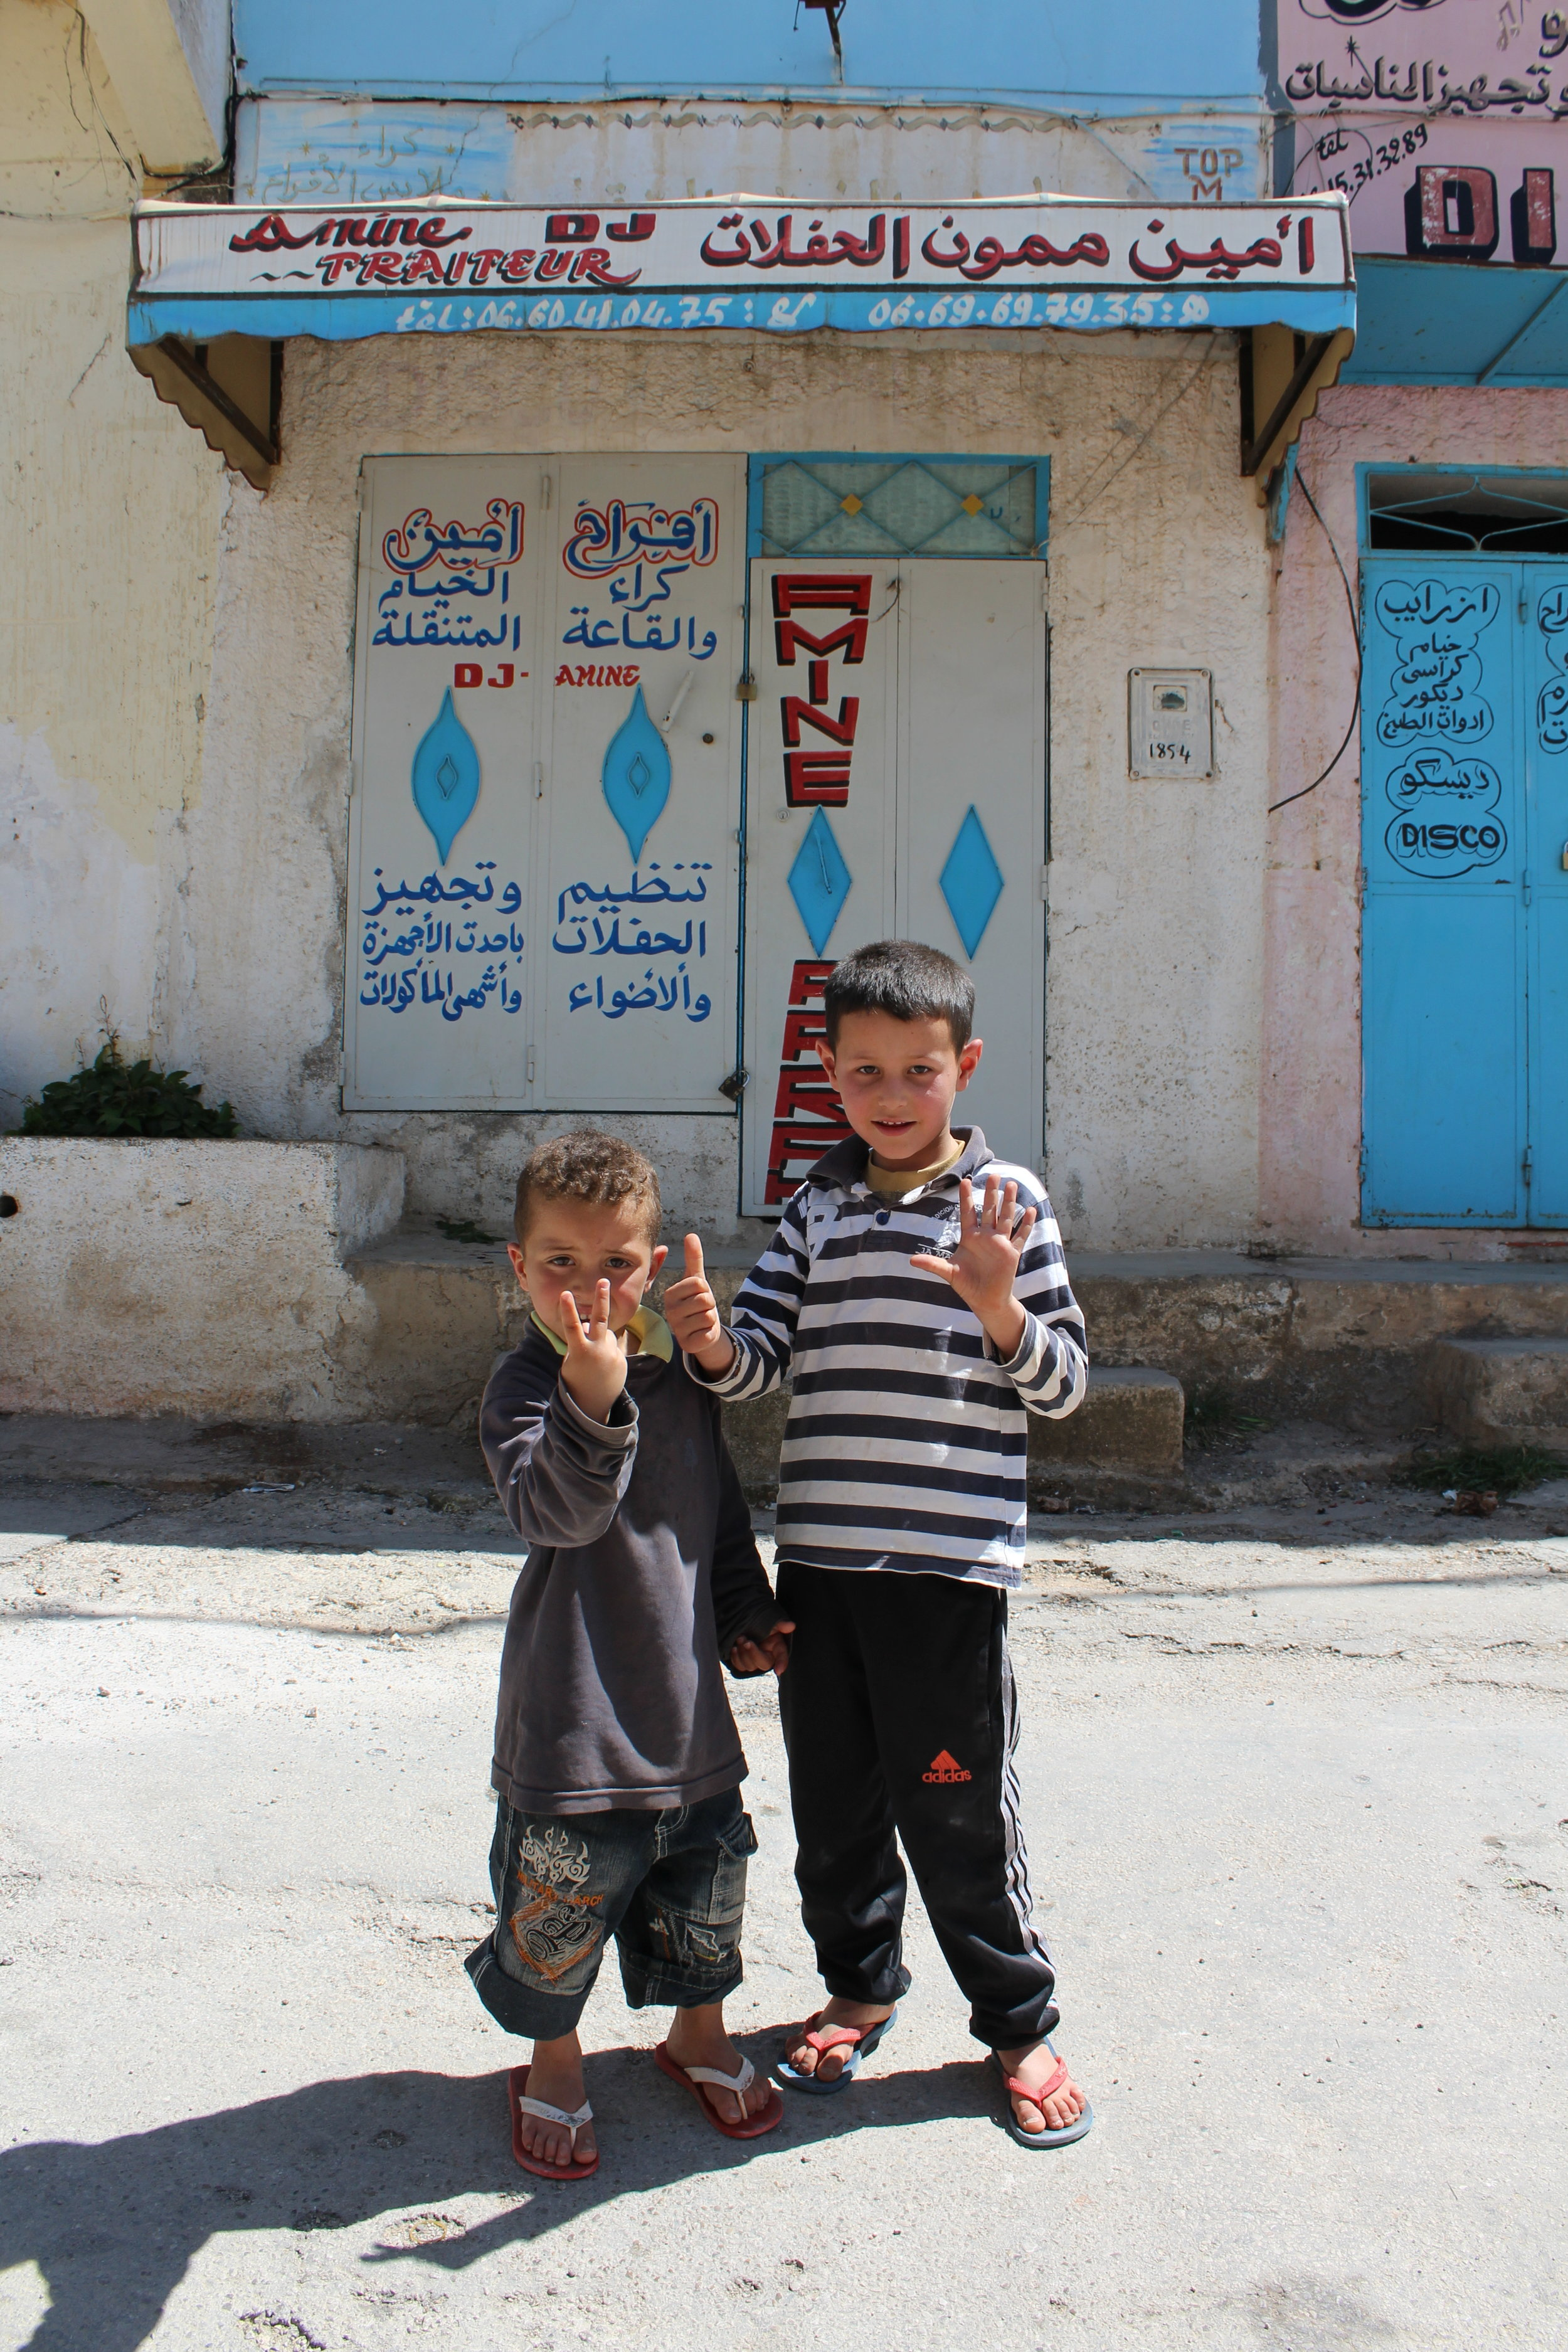 Children in the town of Bhalil, Morocco.